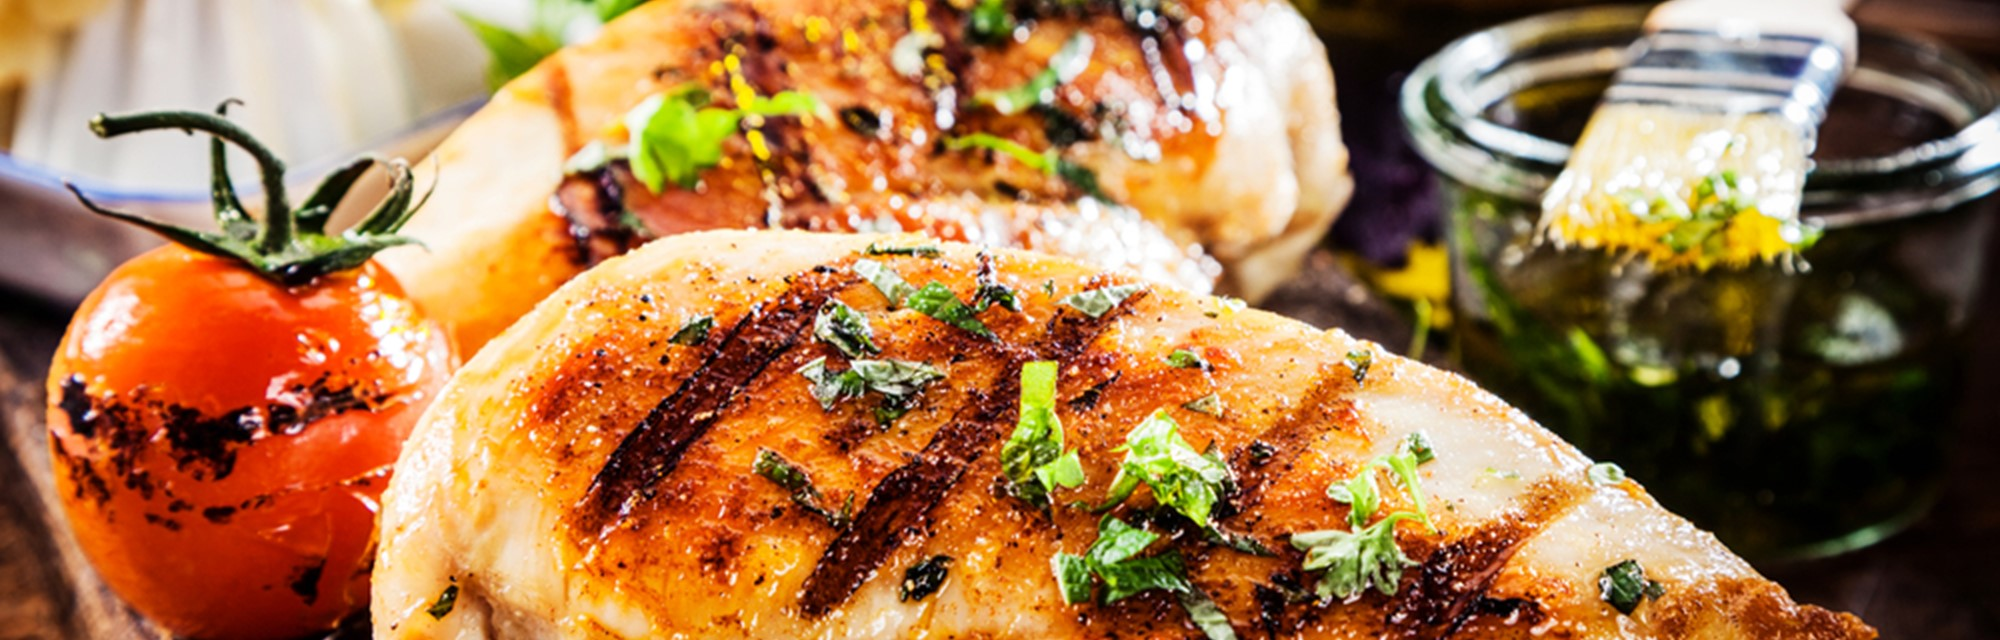 Header - Chicken Marinade